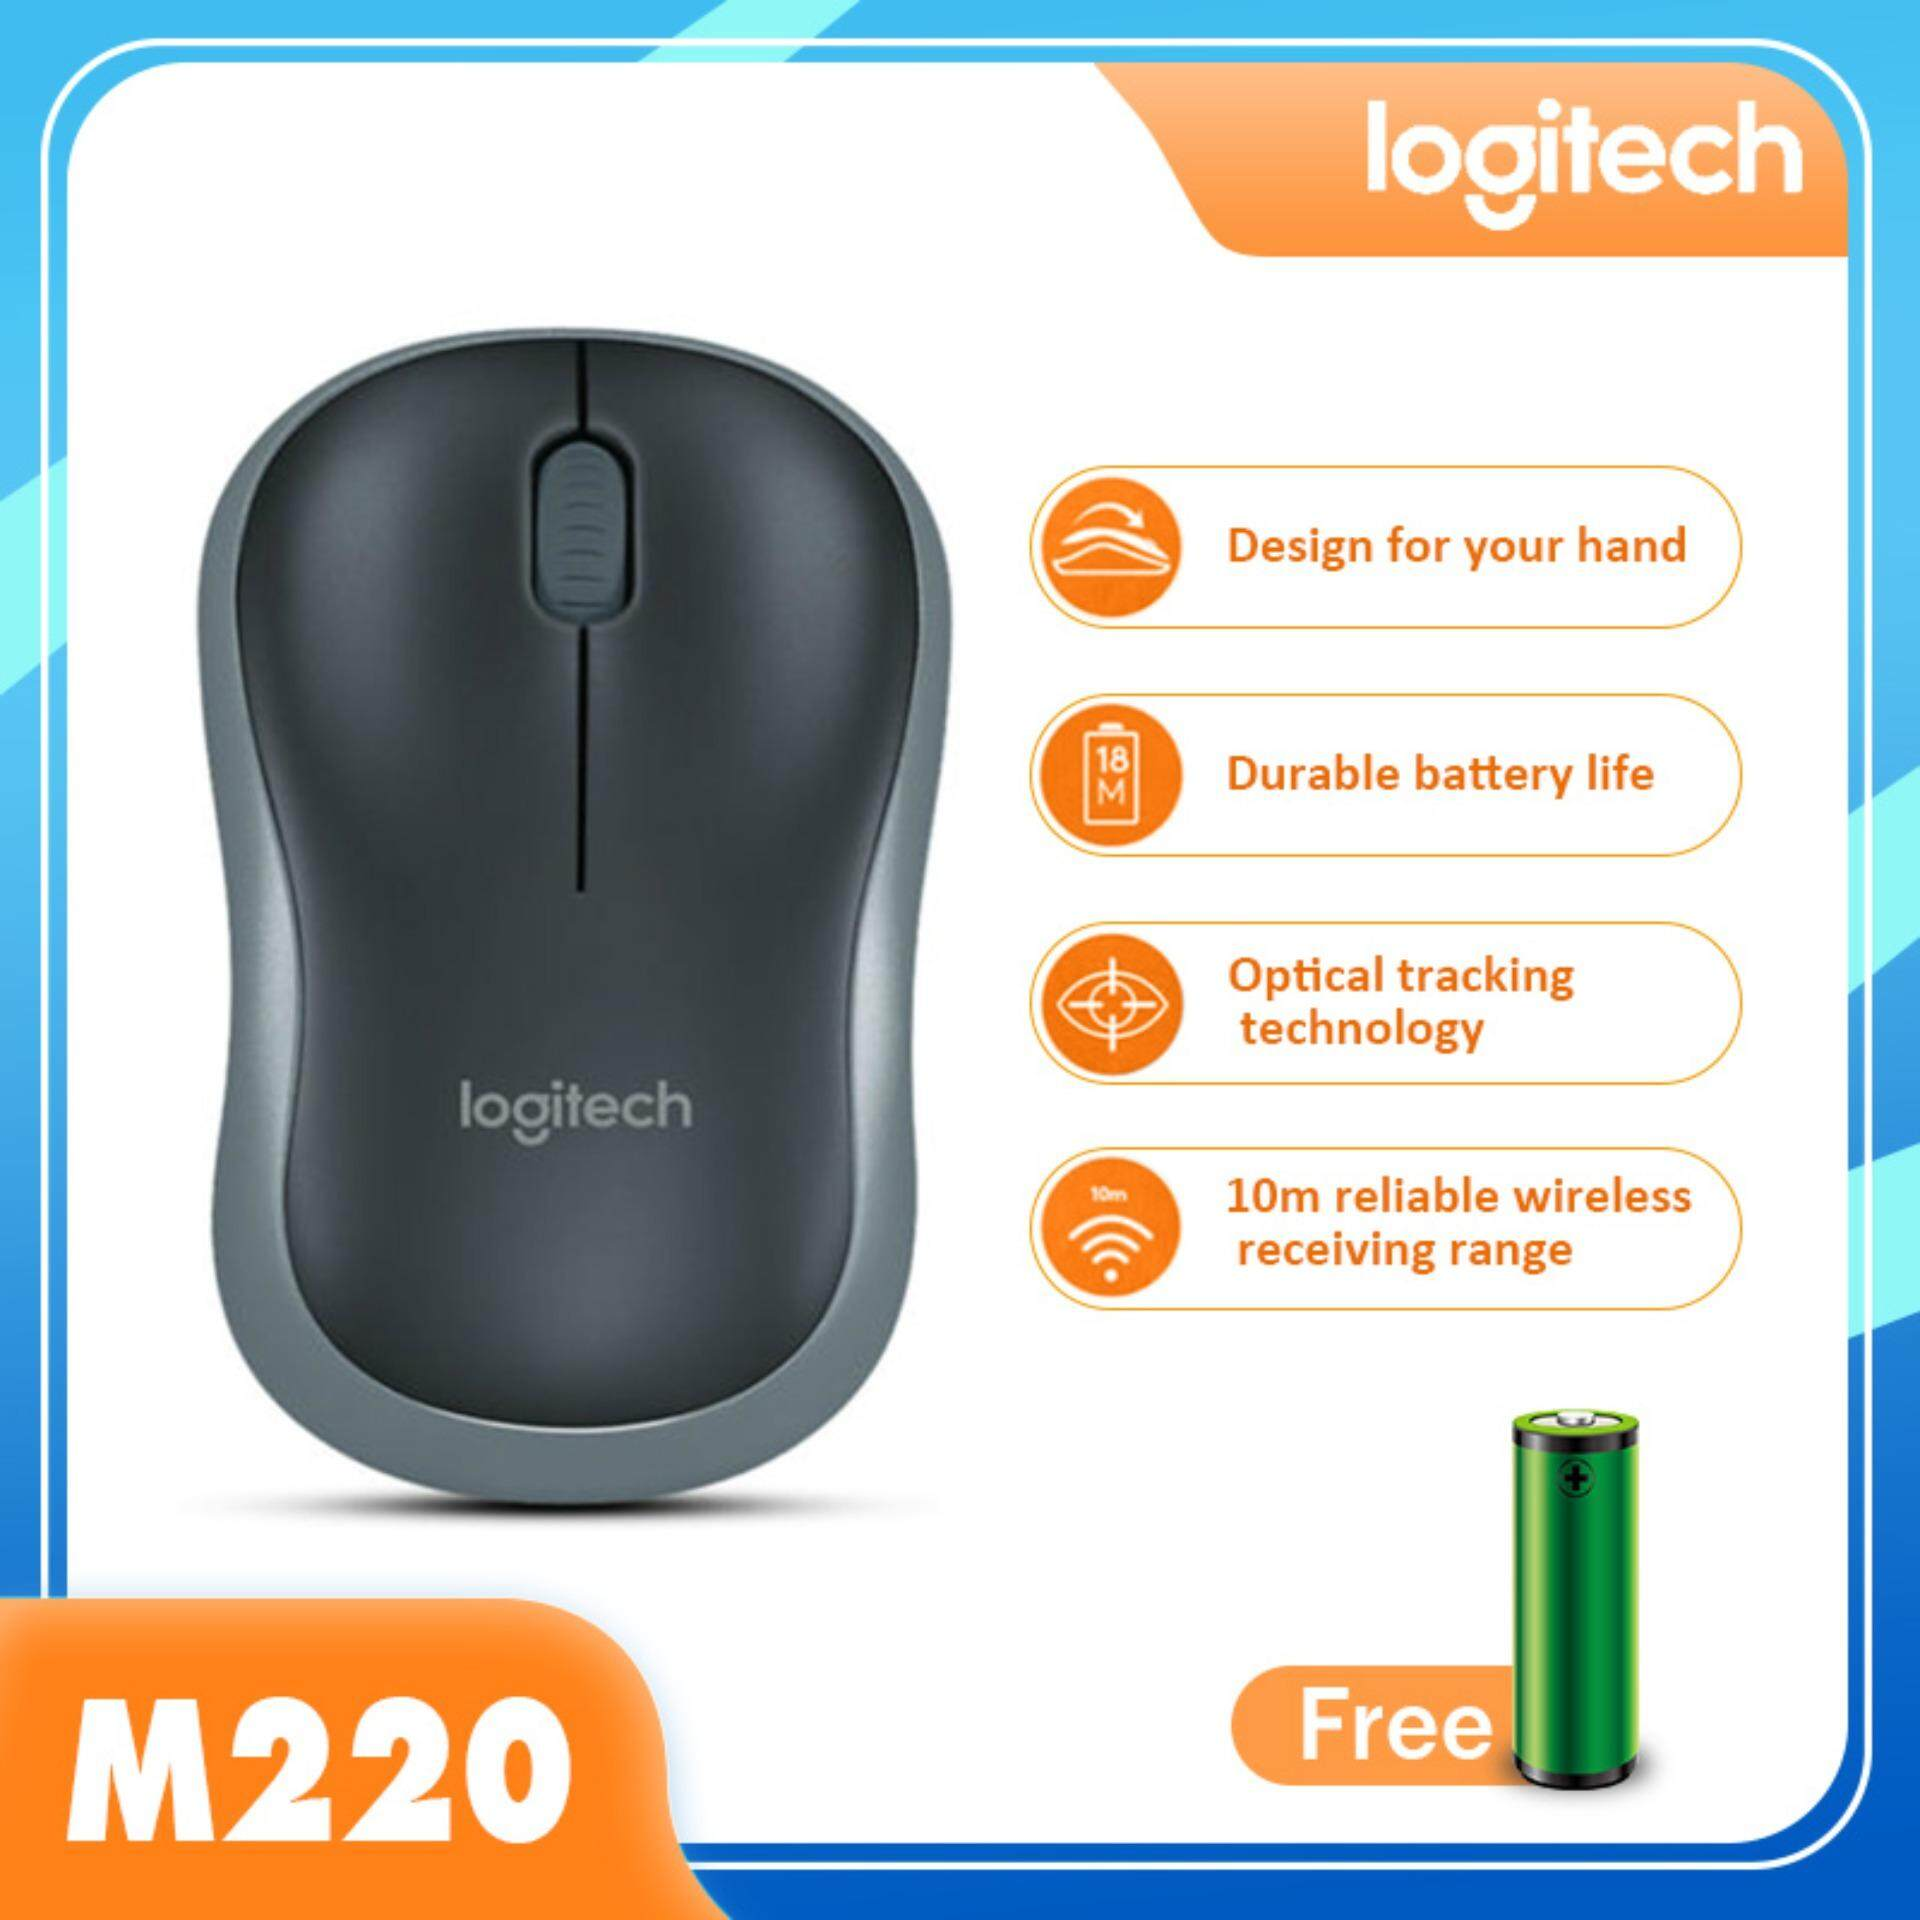 Original Box Logitech M220 Mouse 2.4G Wireless Mouse Laptop PC Computer Mice With USB Nano Receiver Malaysia